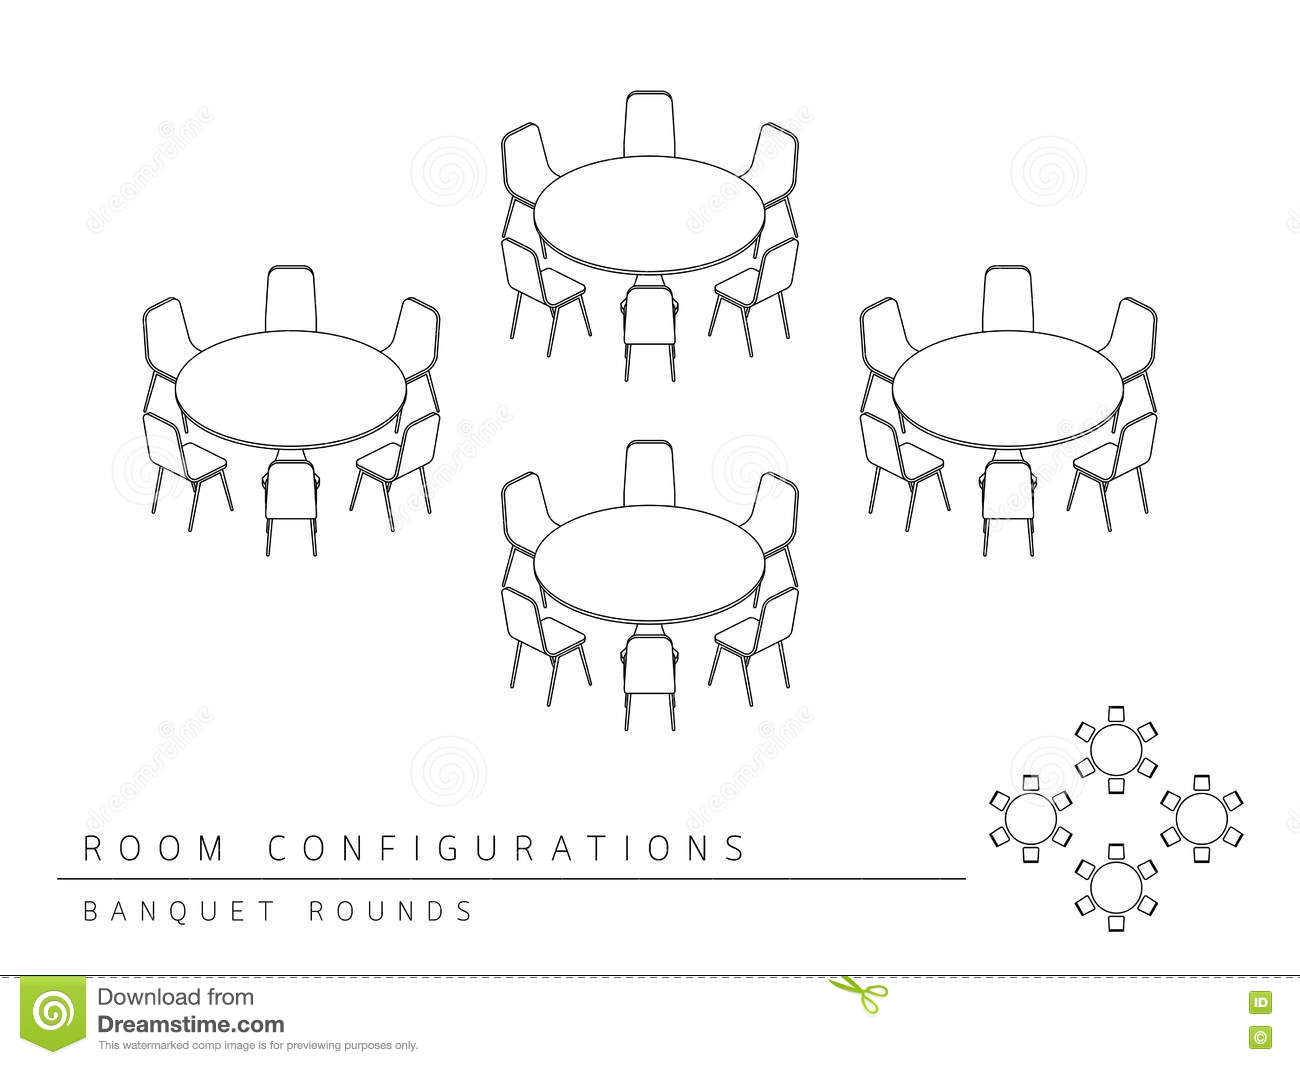 Support Group Meeting Stick Figure Pictogram Icons Gm515146983 48050298 moreover Stock Illustration Meeting Room Setup Layout Configuration Banquet Rounds Style Perspective D Top View Illustration Outline Black White Image71485515 further 427279083378149865 moreover Map Monday Navigating The Pentagon in addition Dlf Galleria Gurgaon. on conference room plans